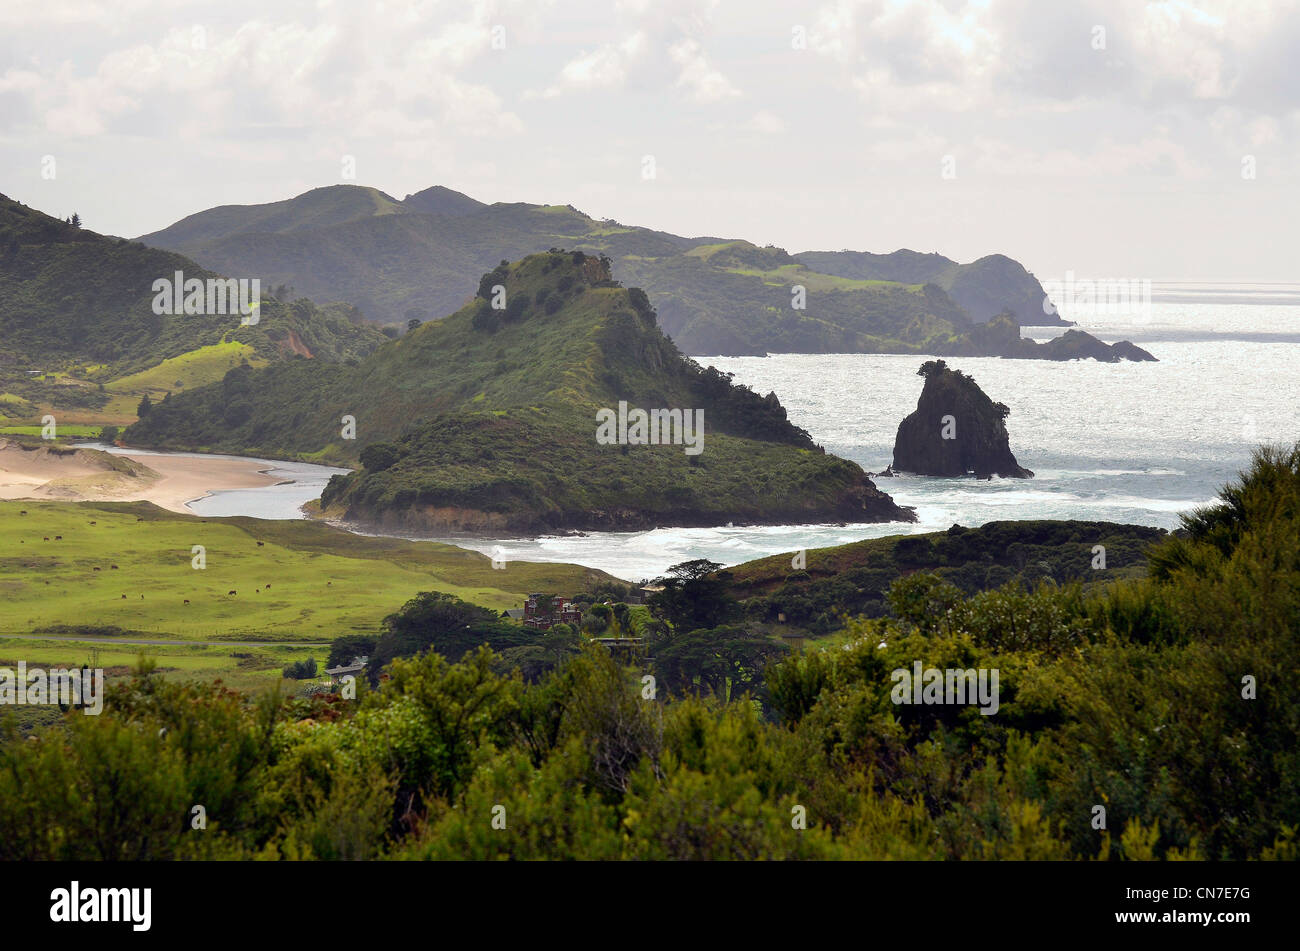 Coastline near Medlands, Great Barrier Island, Hauraki Gulf Auckland New Zealand - Stock Image